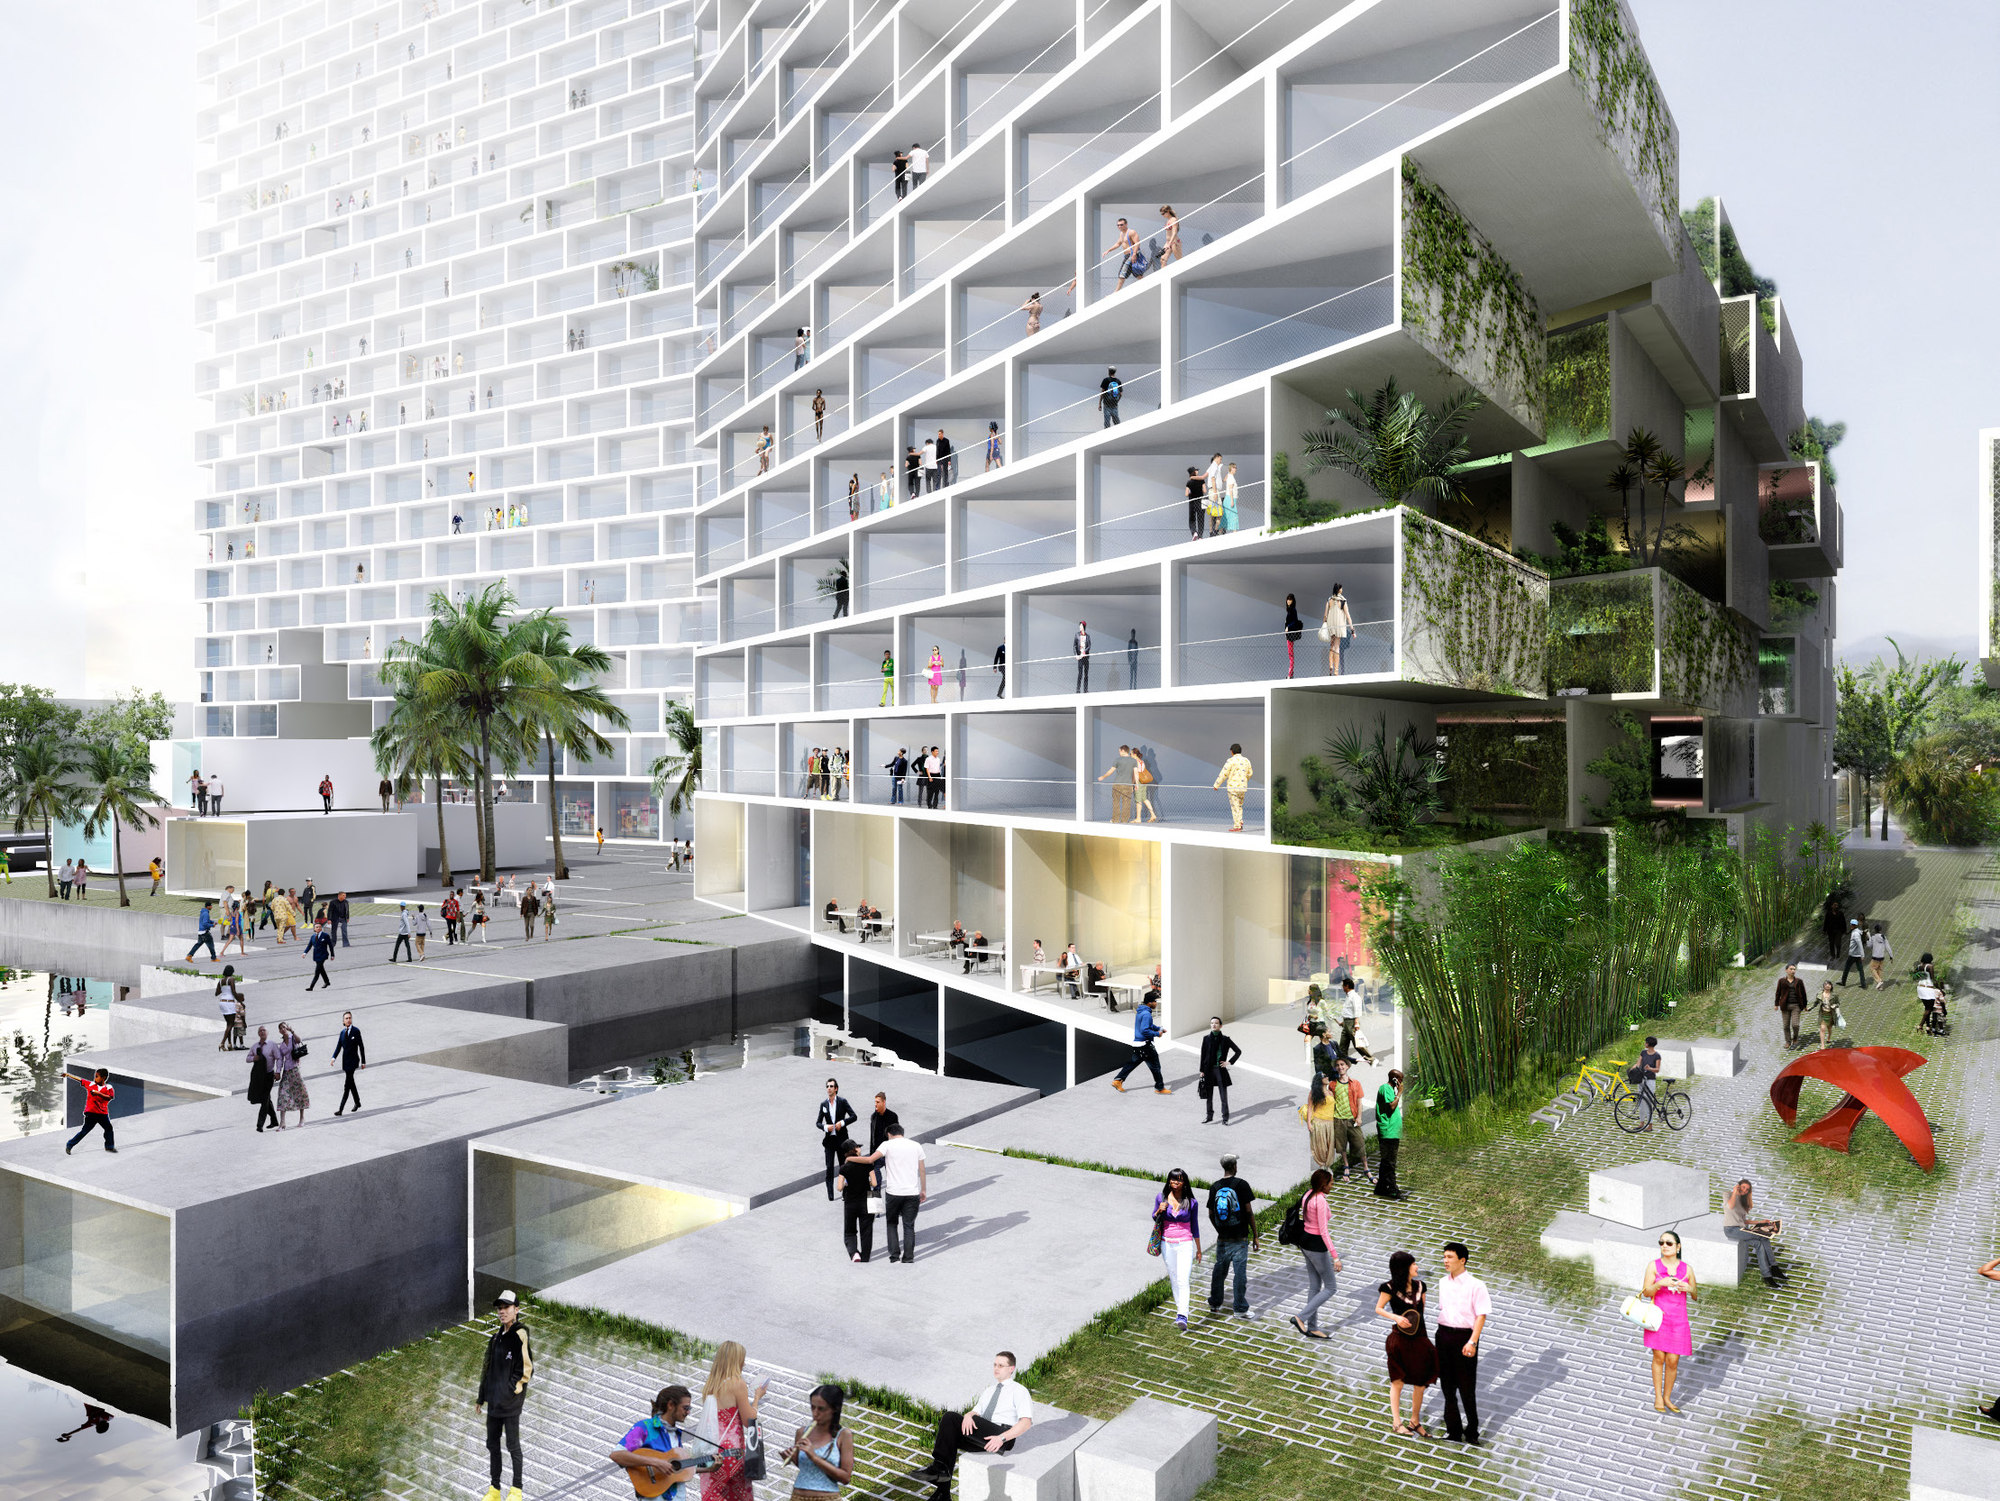 Marina lofts bjarke ingels group big the superslice for Big bjarke ingels group